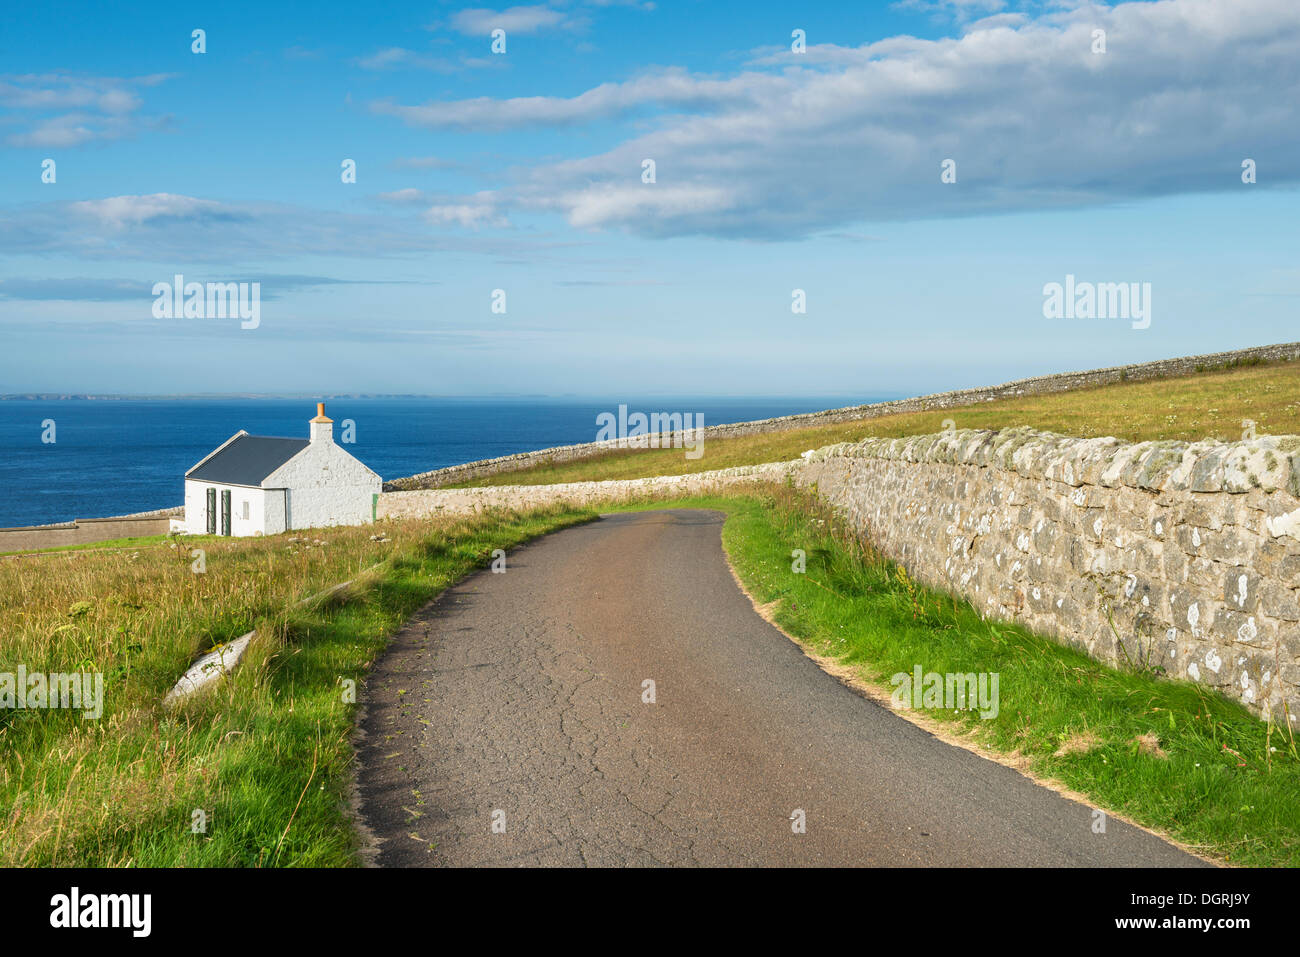 Cottage on the northern coast of Scotland, Dunnet Head, Caithness County, Scotland, United Kingdom, Europe - Stock Image